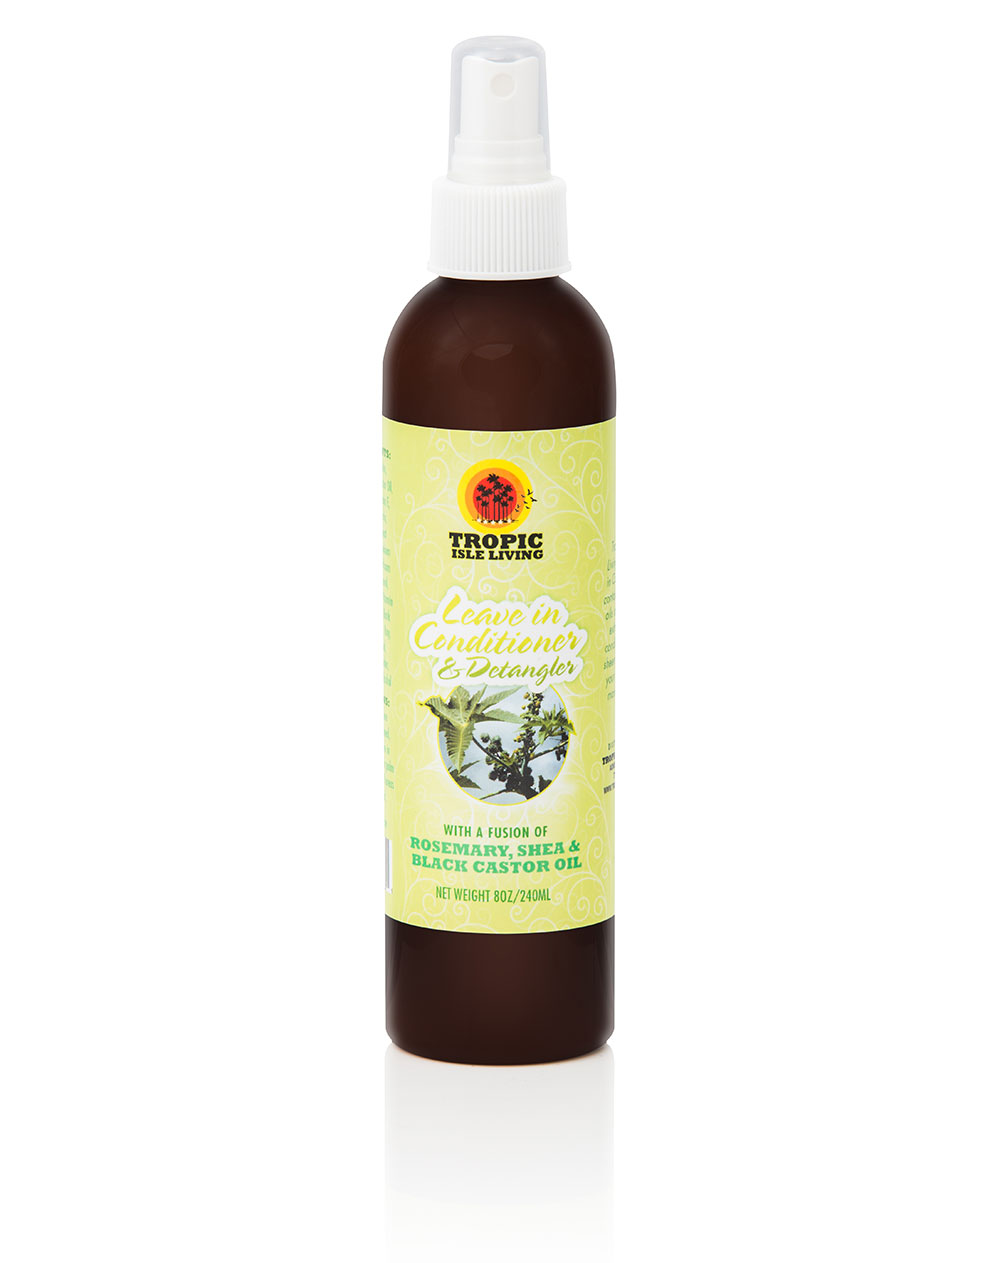 Shampoo Conditioner For Natural Black Hair